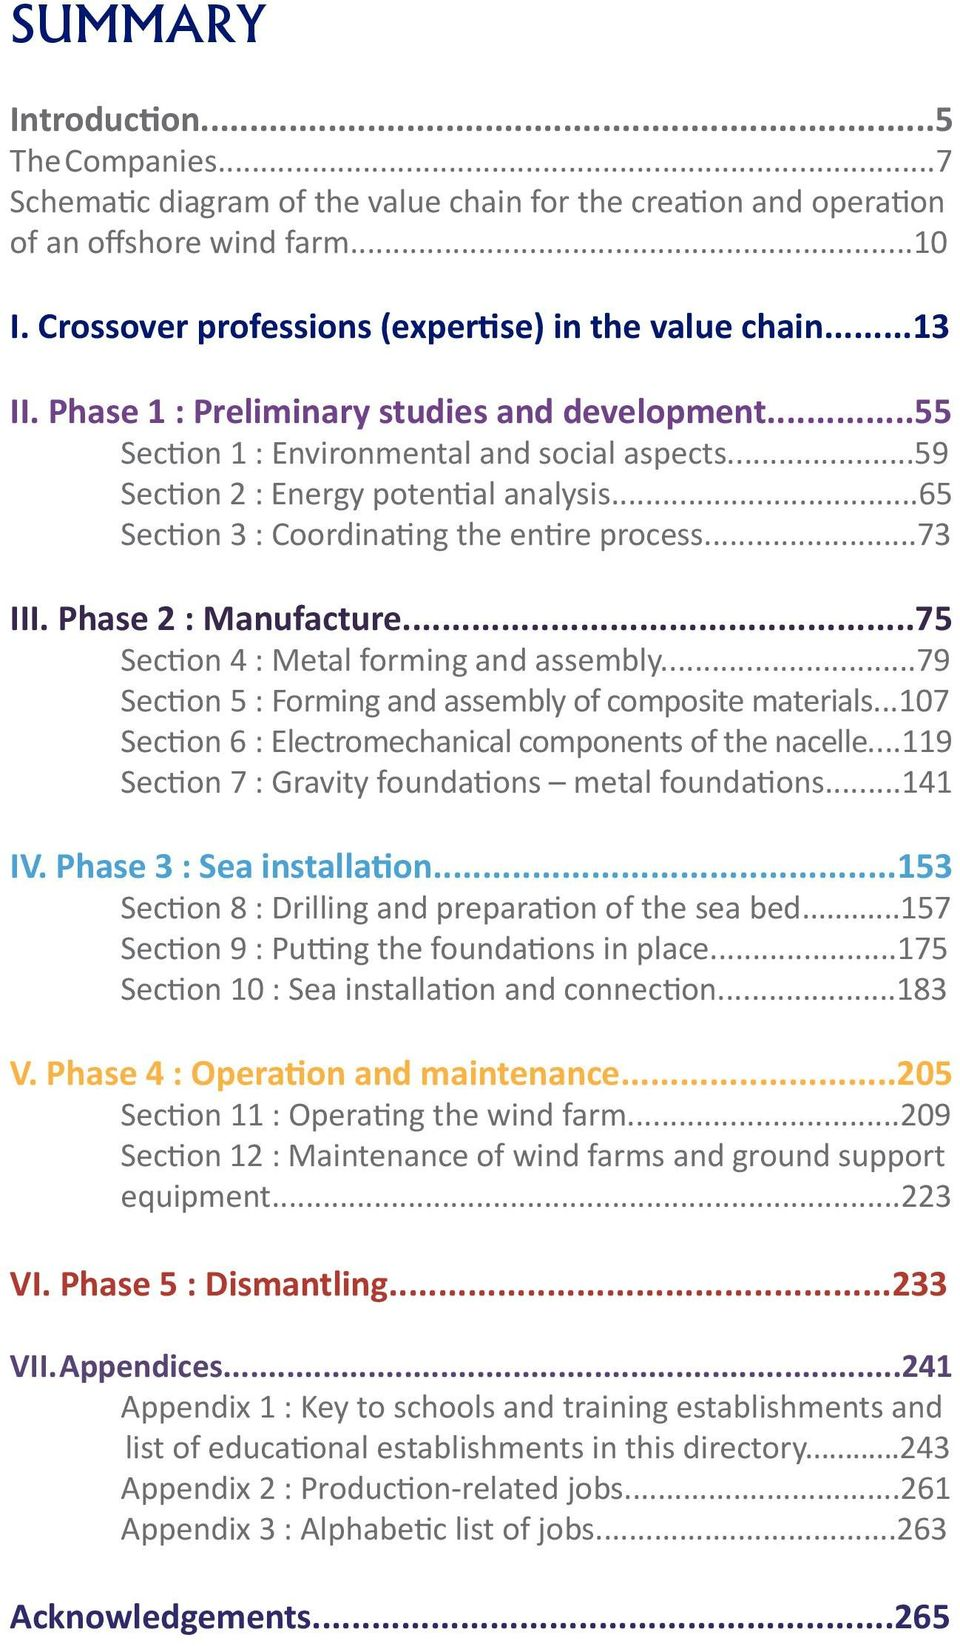 ..73 III. Phase 2 : Manufacture...75 Section 4 : Metal forming and assembly...79 Section 5 : Forming and assembly of composite materials...107 Section 6 : Electromechanical components of the nacelle.